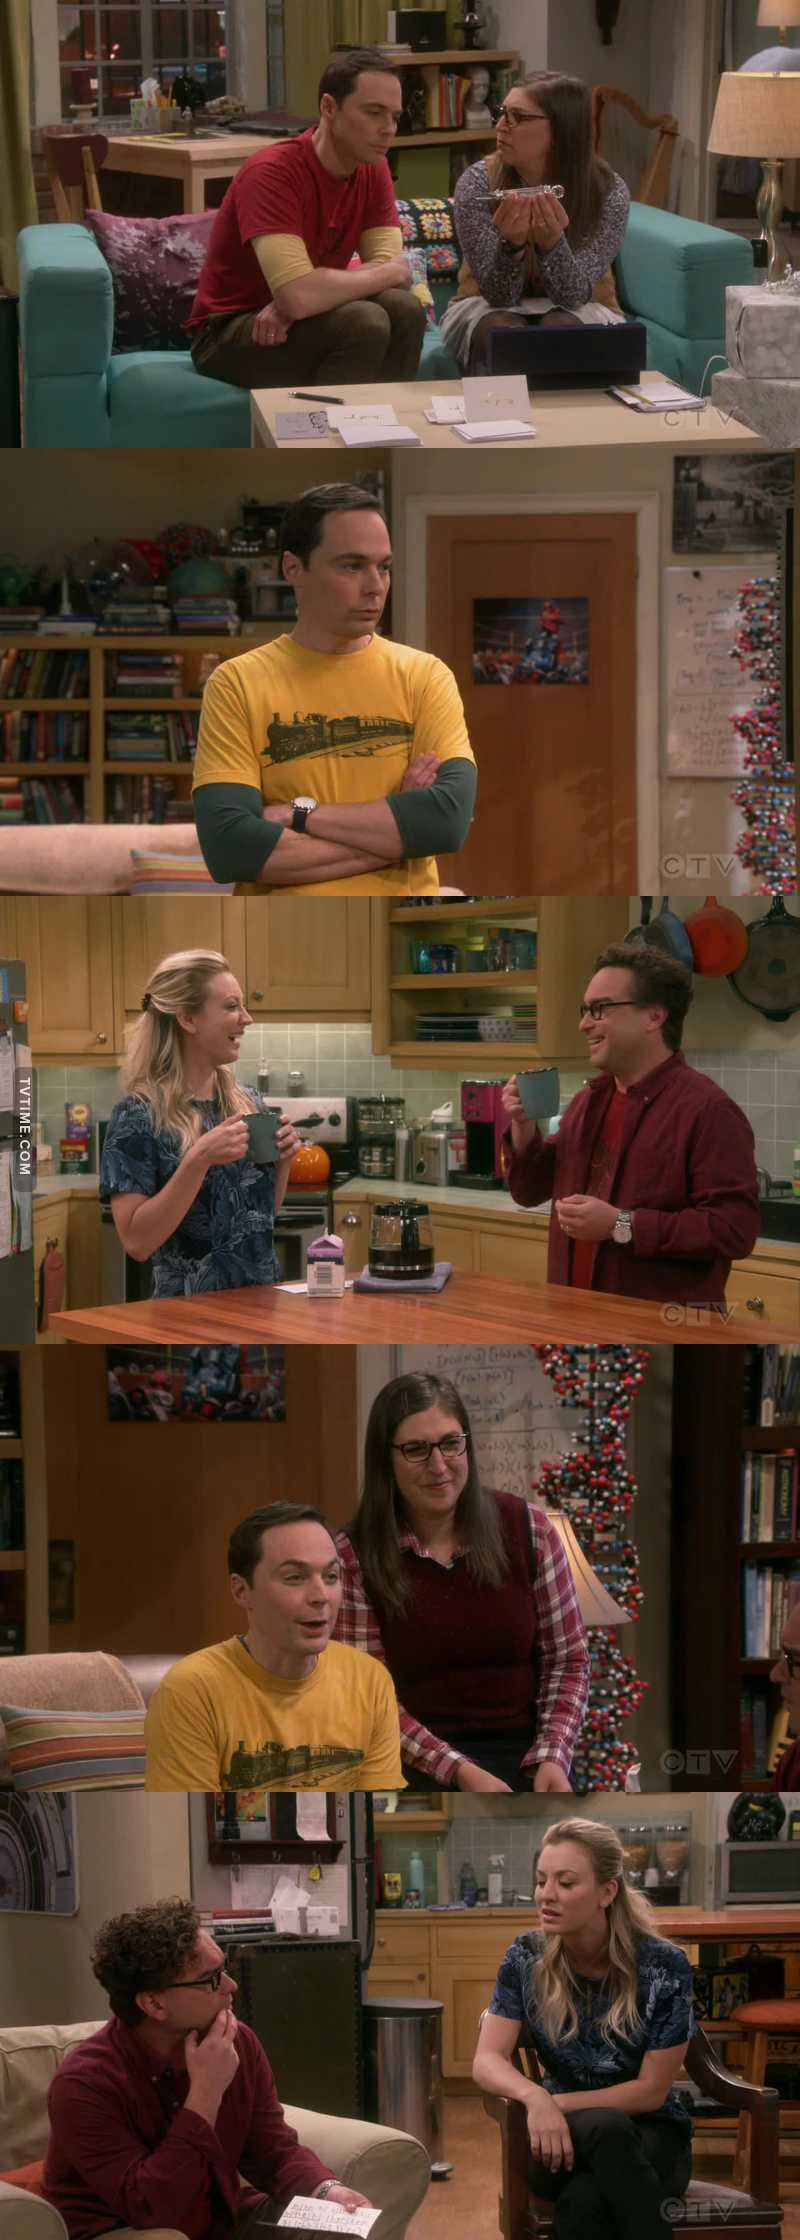 Penny and Leonard were so devilish and playful...